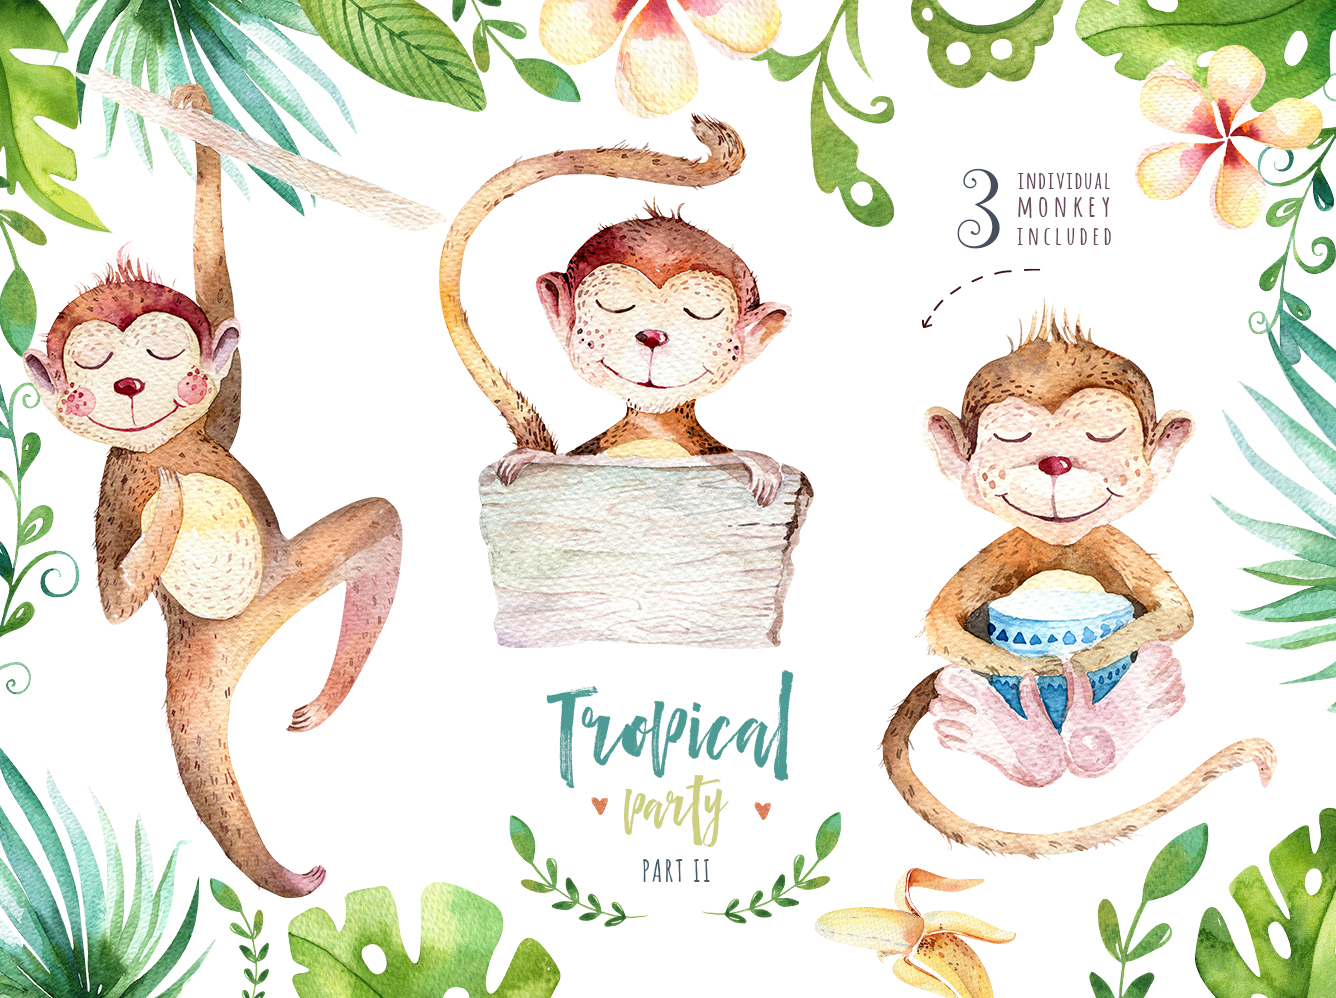 Tropical party II. Monkey collection example image 3